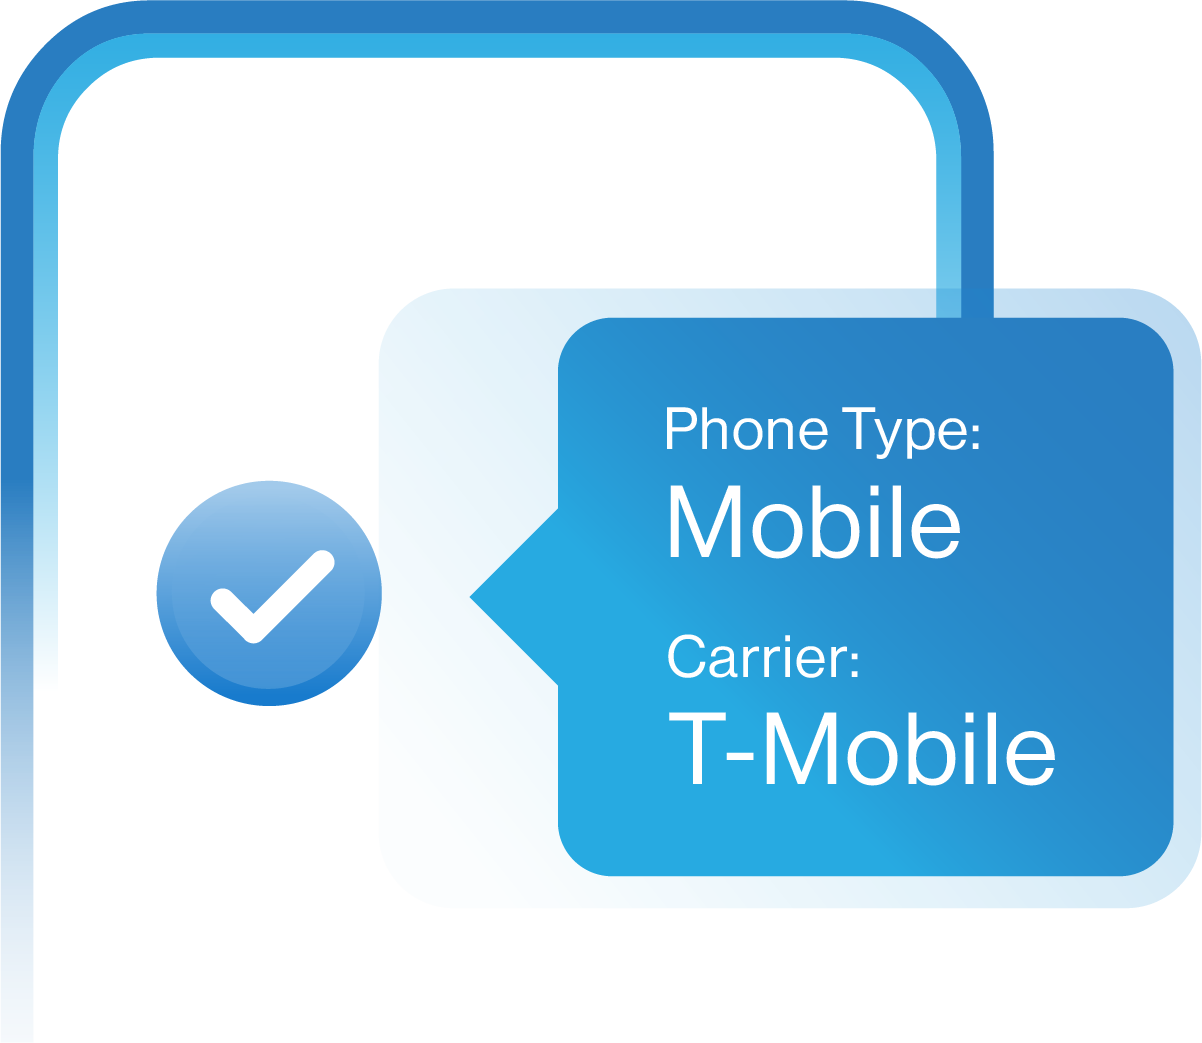 PhoneID product message icon